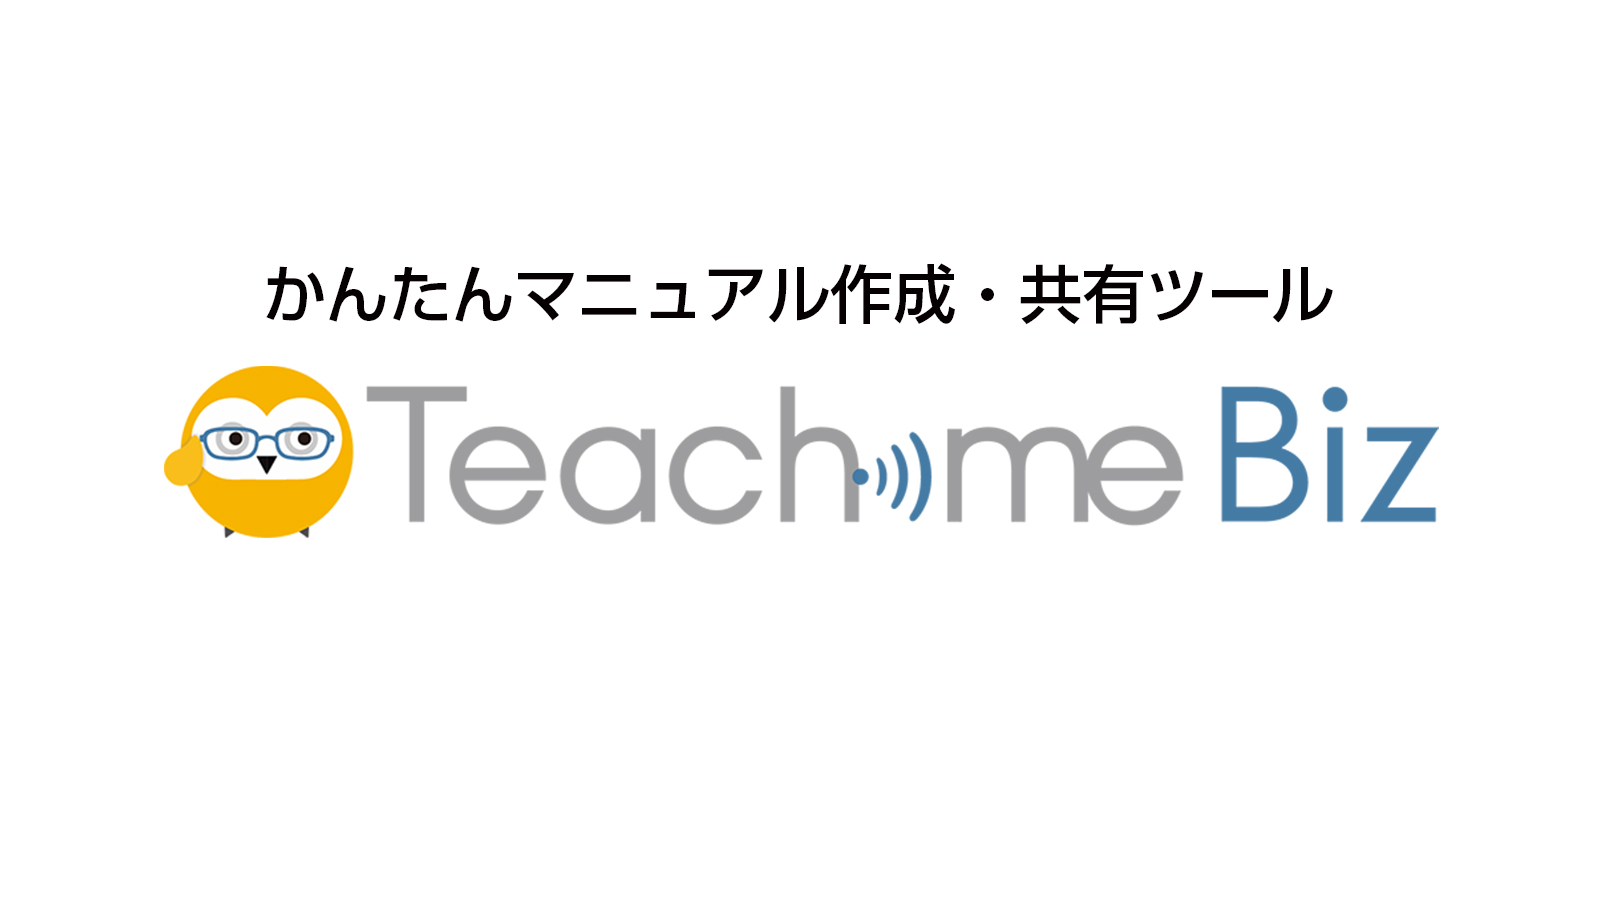 Teachme Biz